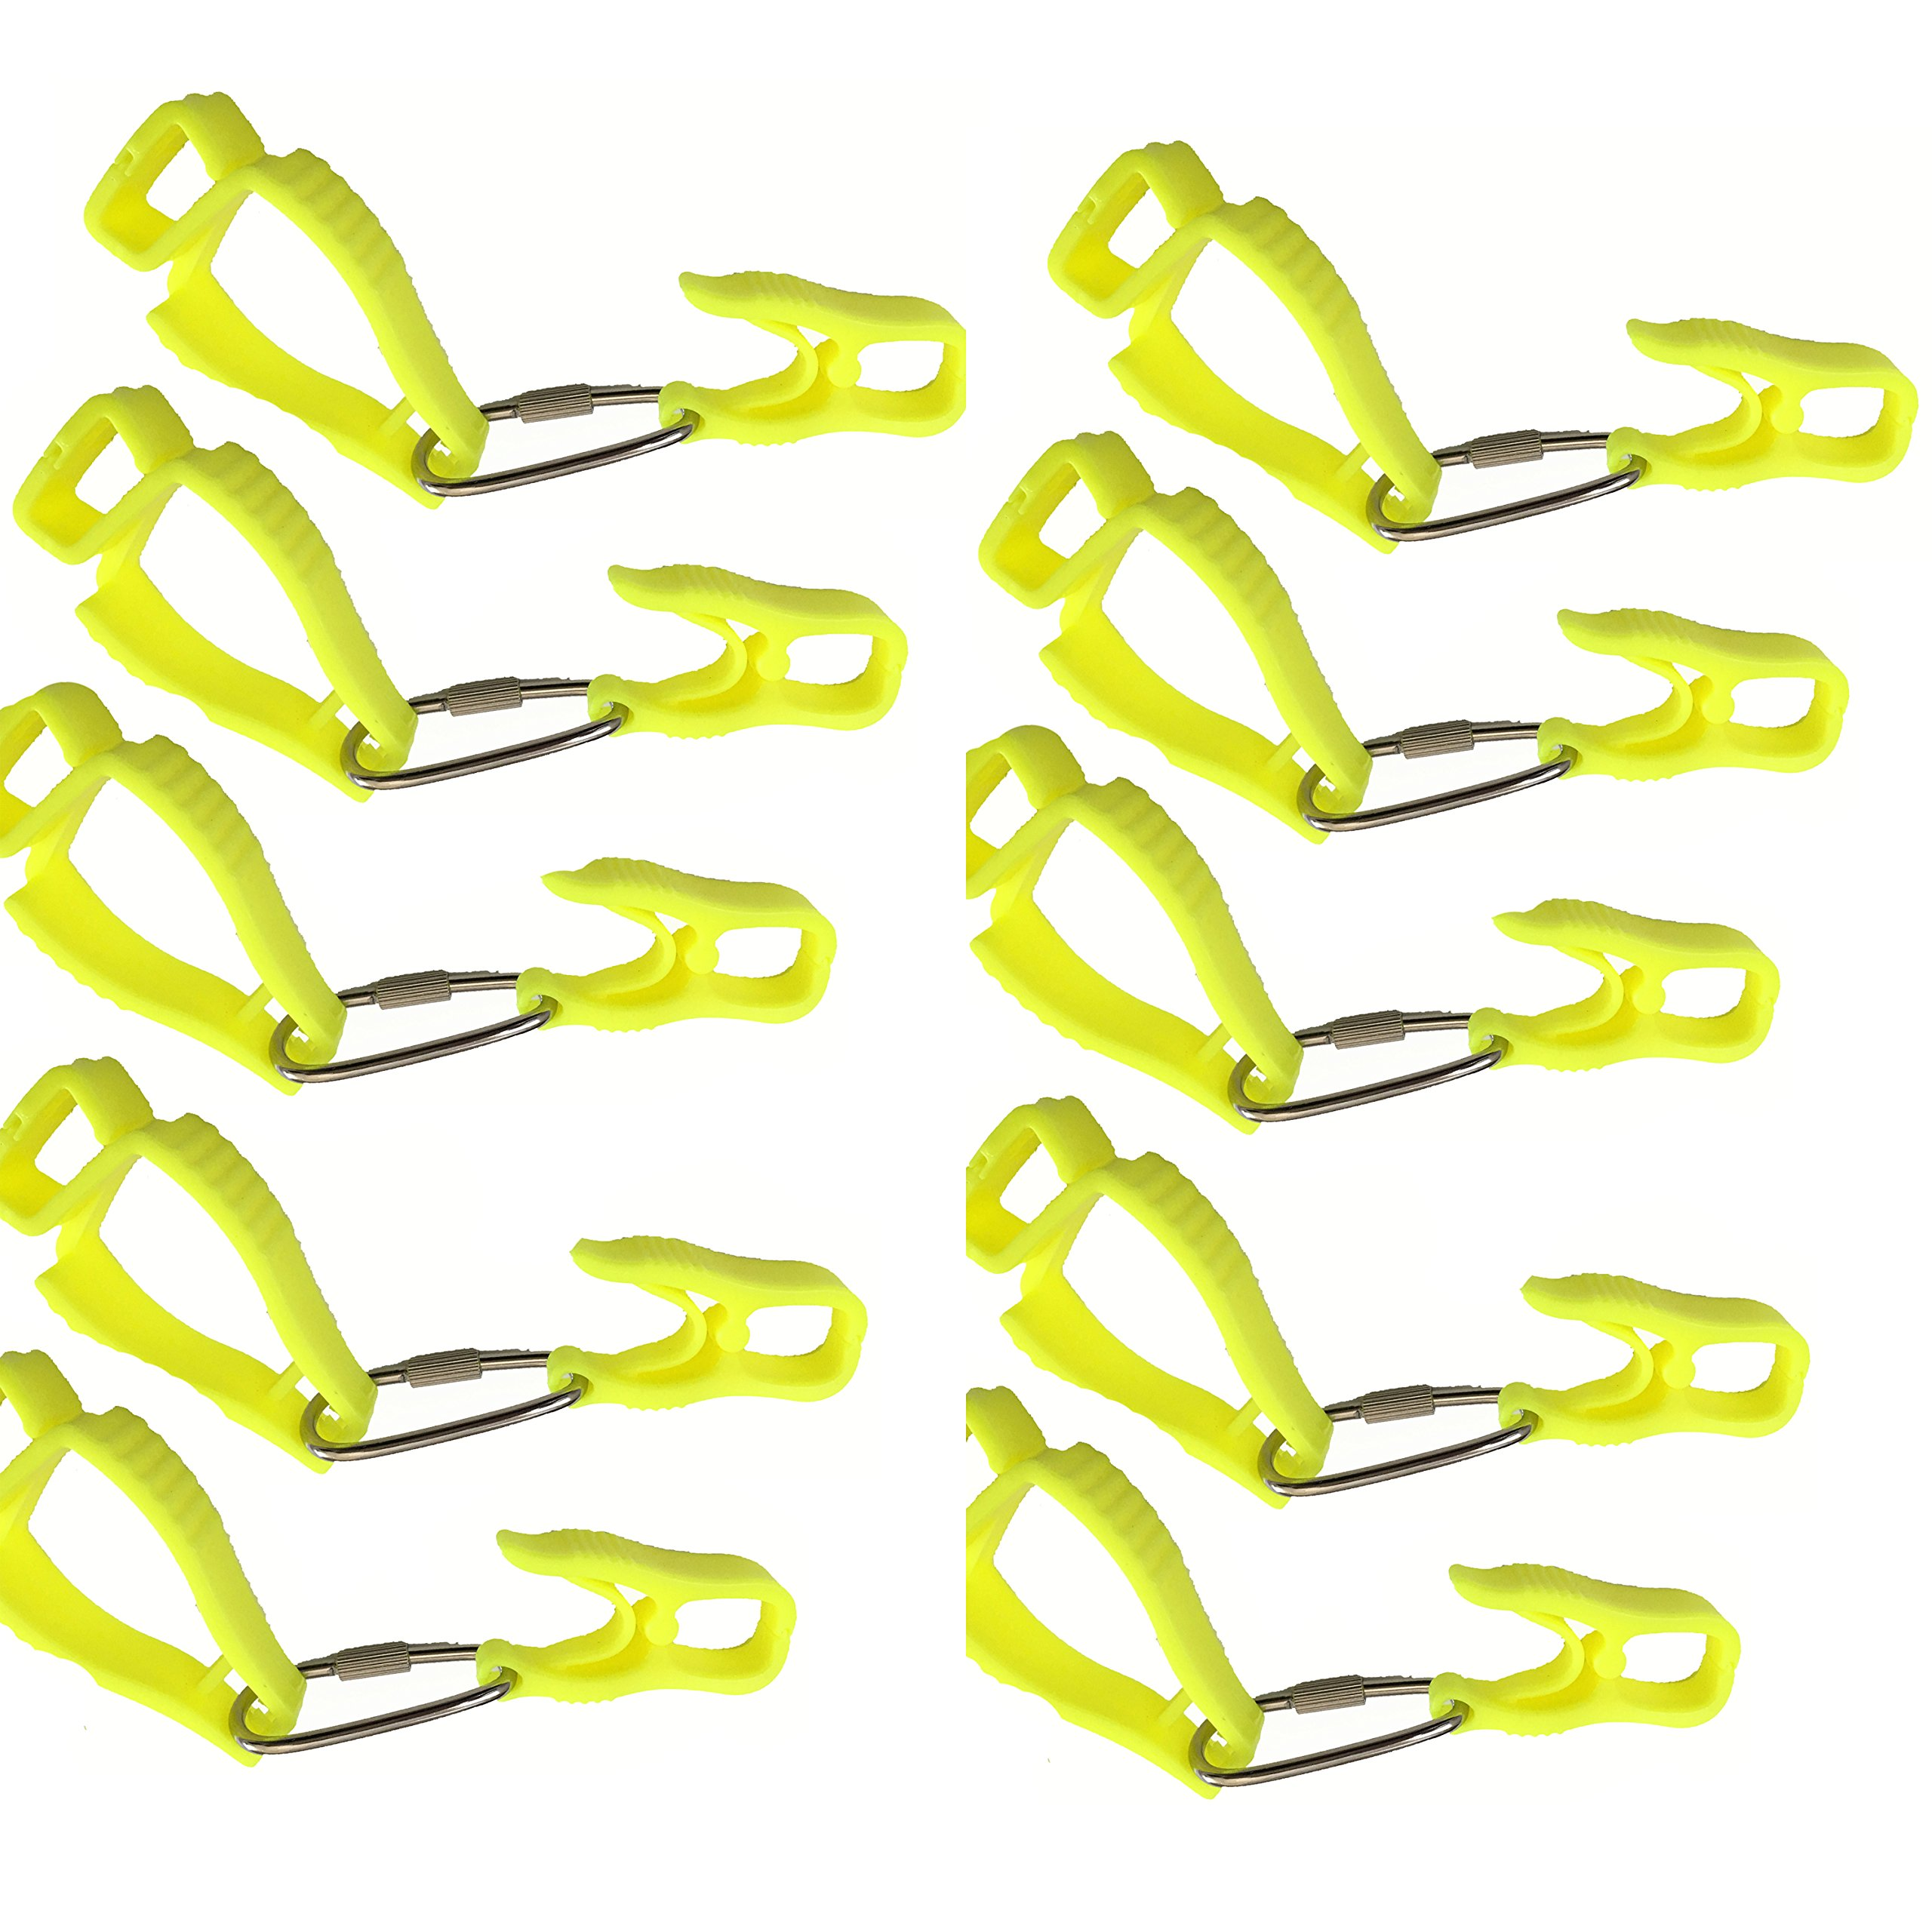 10Pcs AT08-10Y Yellow Sino-Max Glove Grabber Clip Holder Guard Work Safety Clip Glove Keeper, Neon POM,Reduce Hand Injury and Clip, Grab, Attach Gloves, Towels, Glass, Helmet